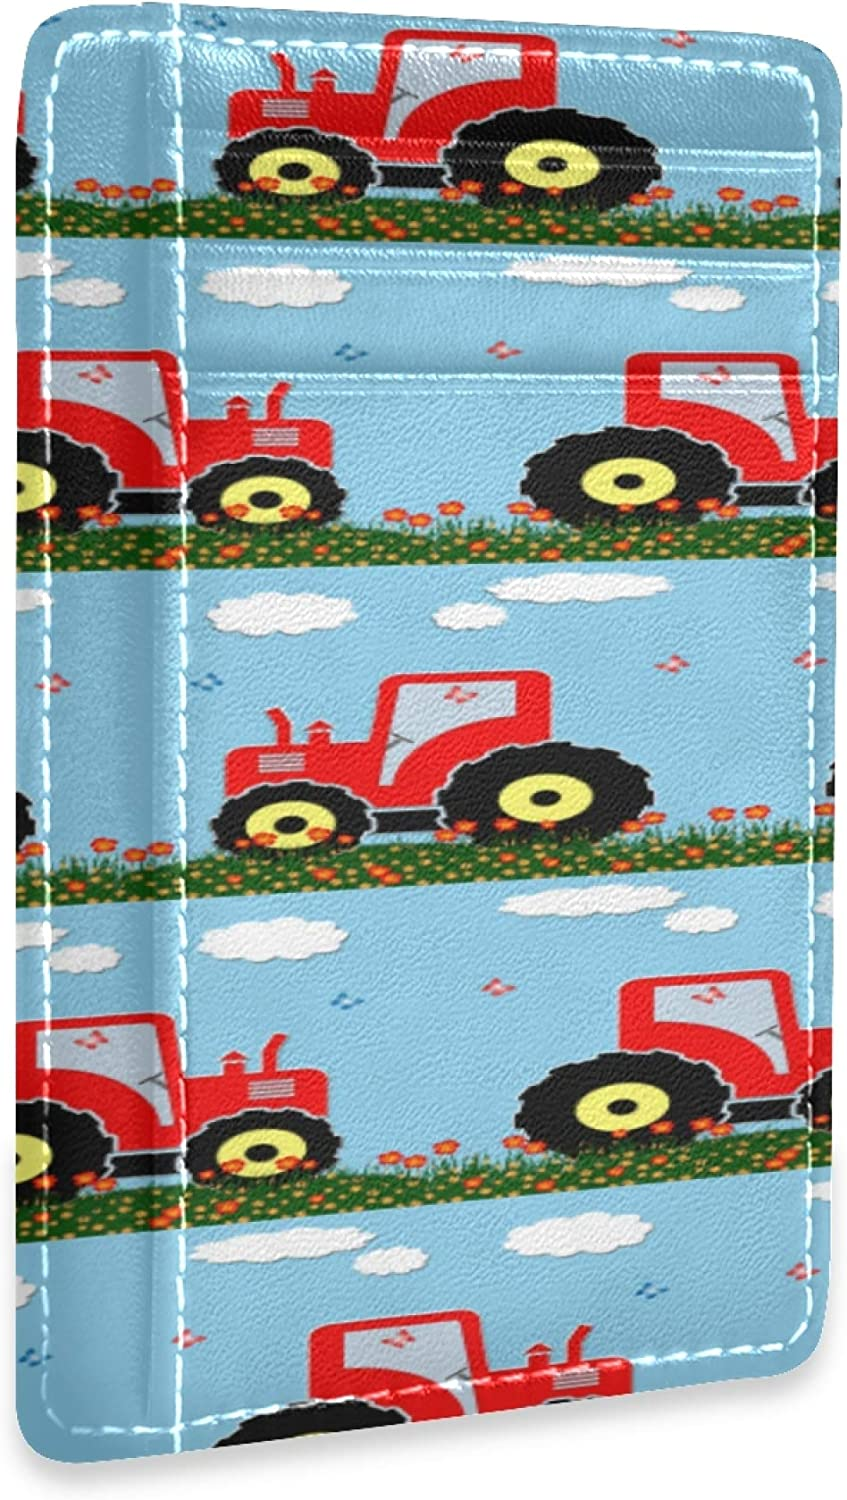 OFFicial store Clip Wallet Cartoon Animation Ranking TOP15 Retro Tractor Toy F Inserts